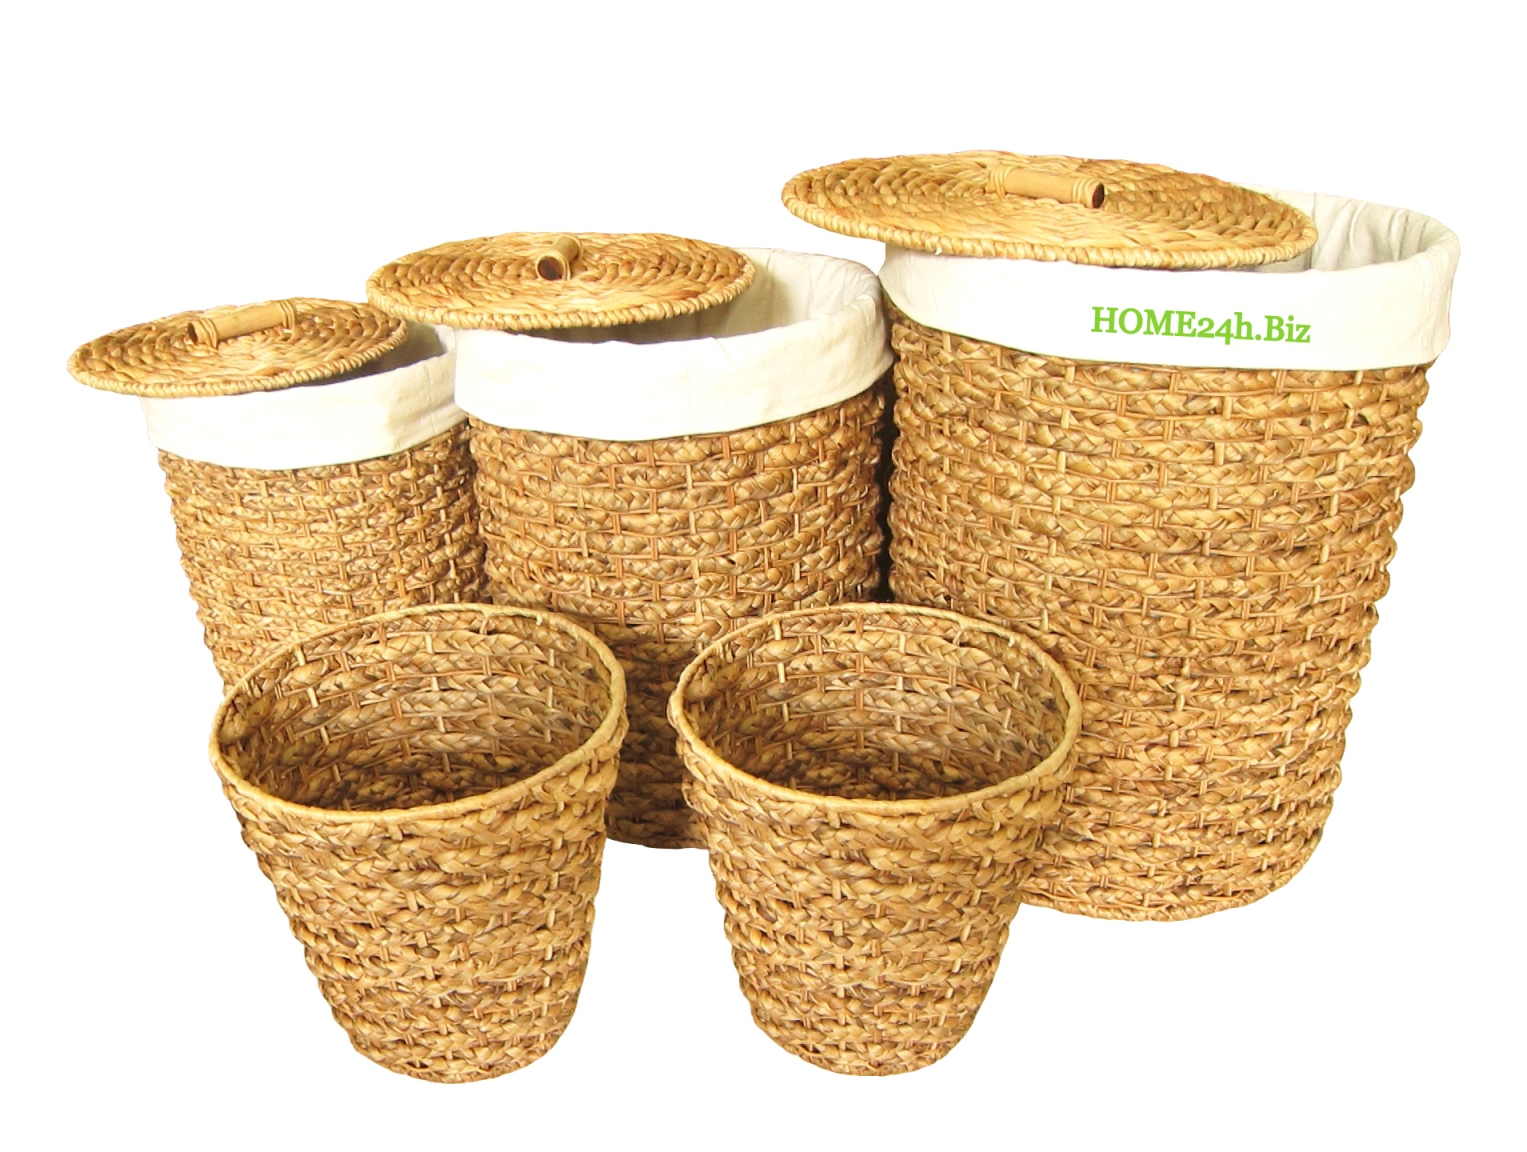 Best selling Water Hyacinth Round Laundry Basket Set s/5 with Bins